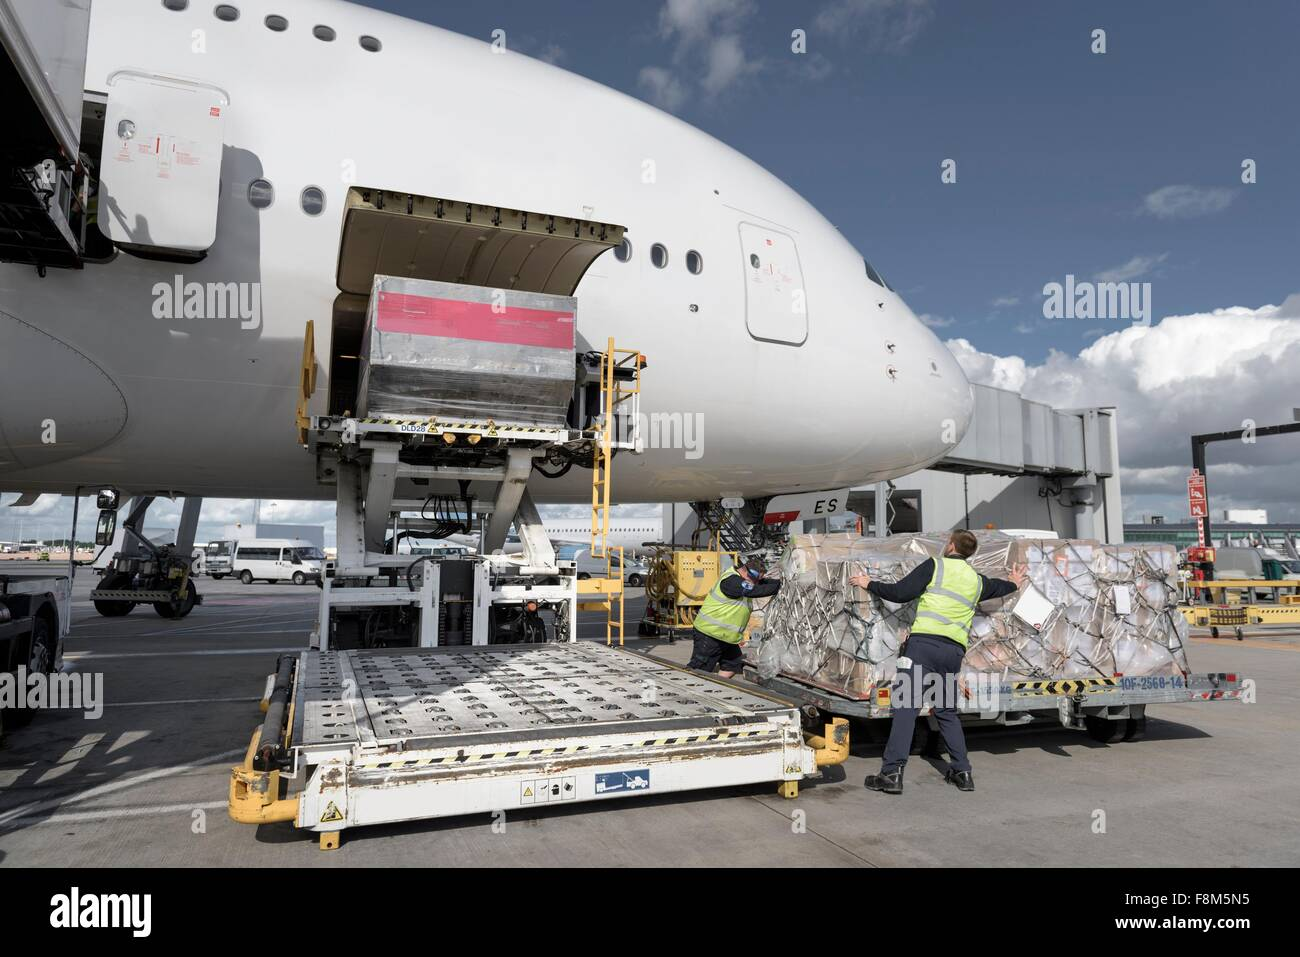 Ground crew loading freight into A380 aircraft - Stock Image